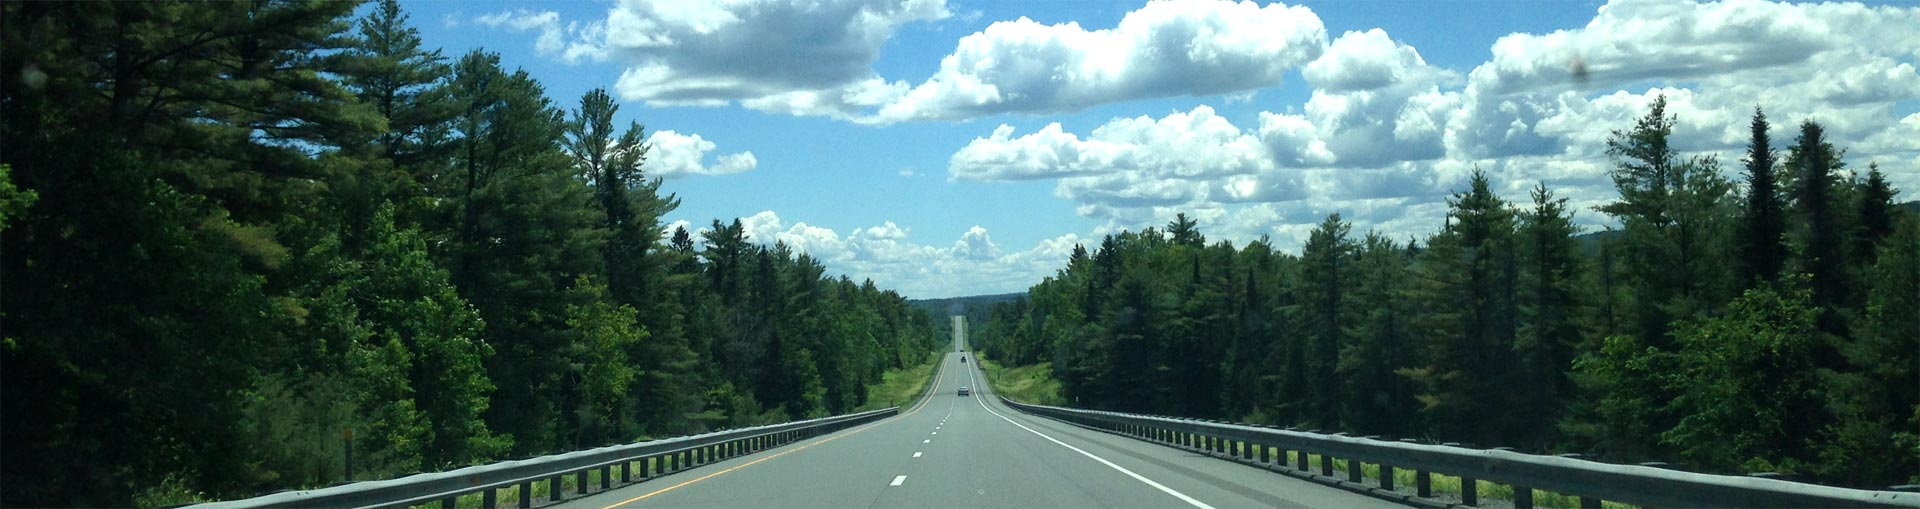 Highway to PorcFest